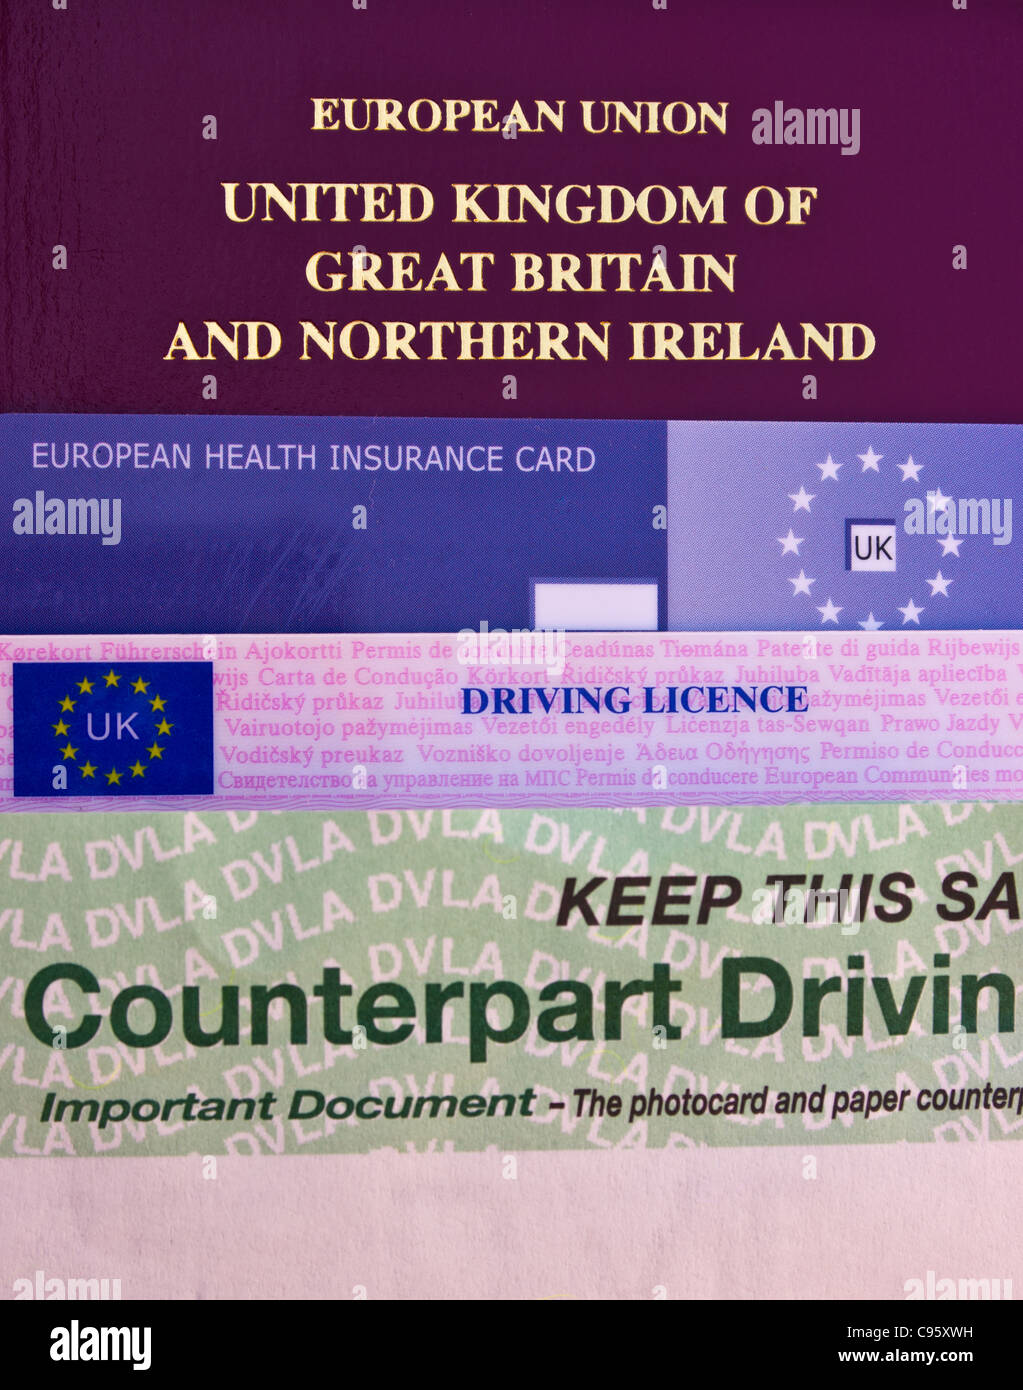 Passport, Health Insurance Card and Driving License. Stock Photo